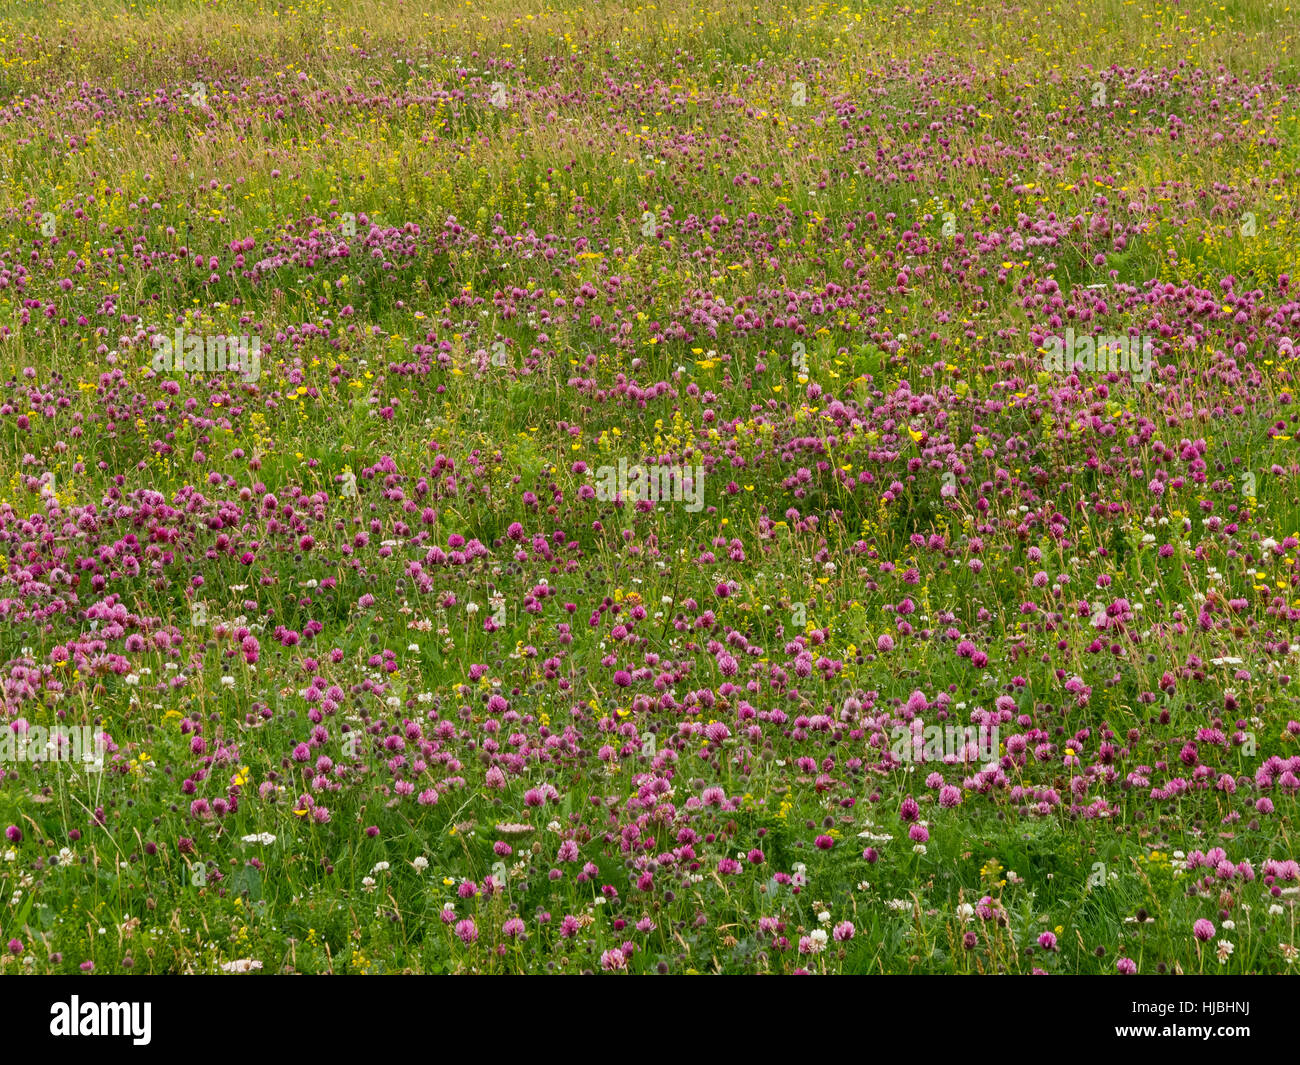 Machair habitat on the isle of Vatersay, in the Outer Hebrides, showing red clover (Trifolium pratense) and Lady's - Stock Image